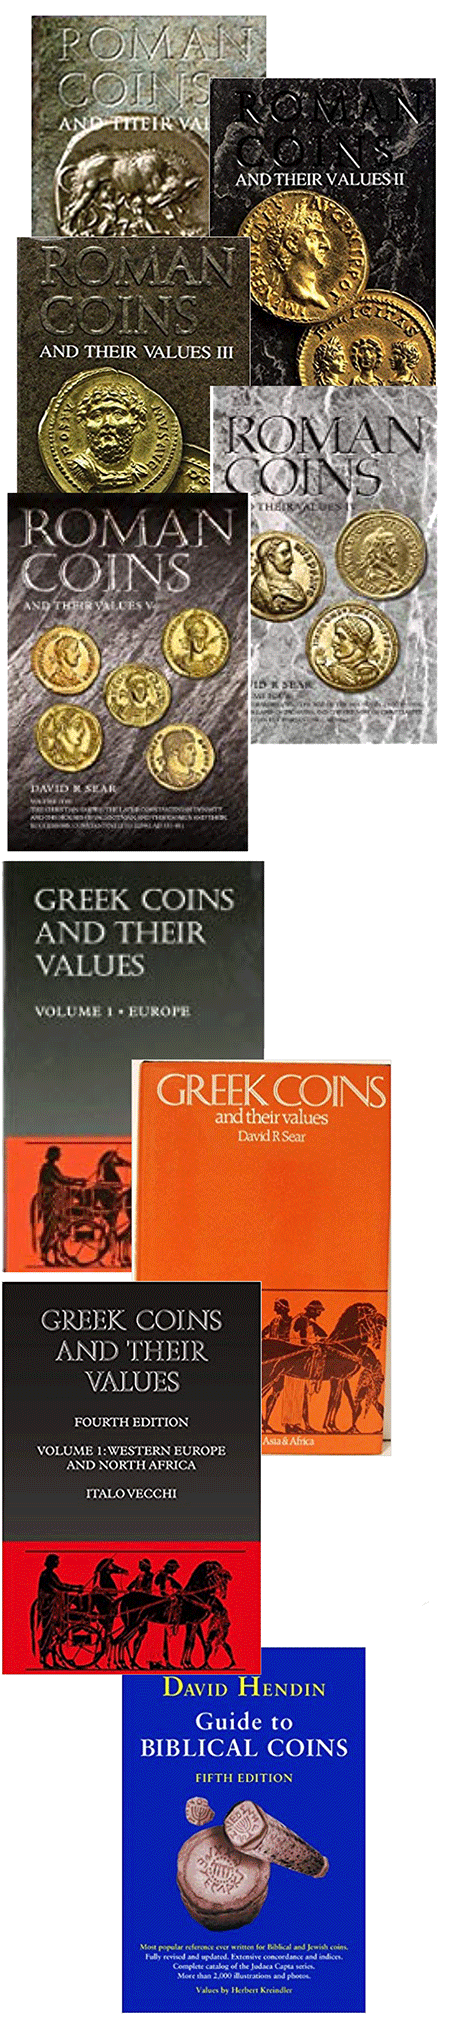 Selection of books about ancient coins